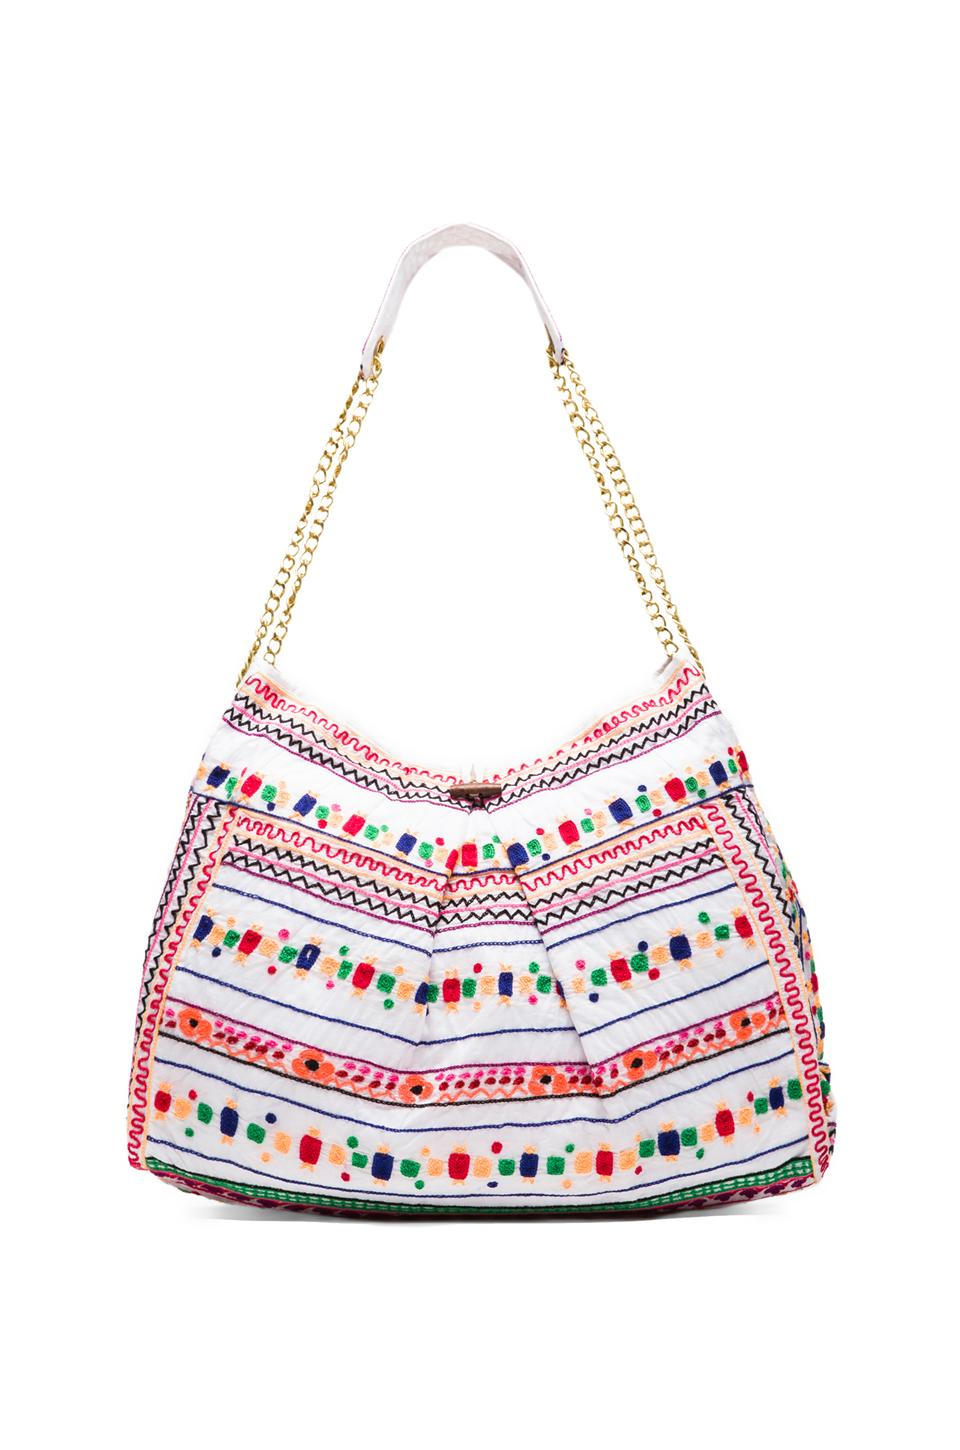 Pia Pauro Embroidered Bag in White